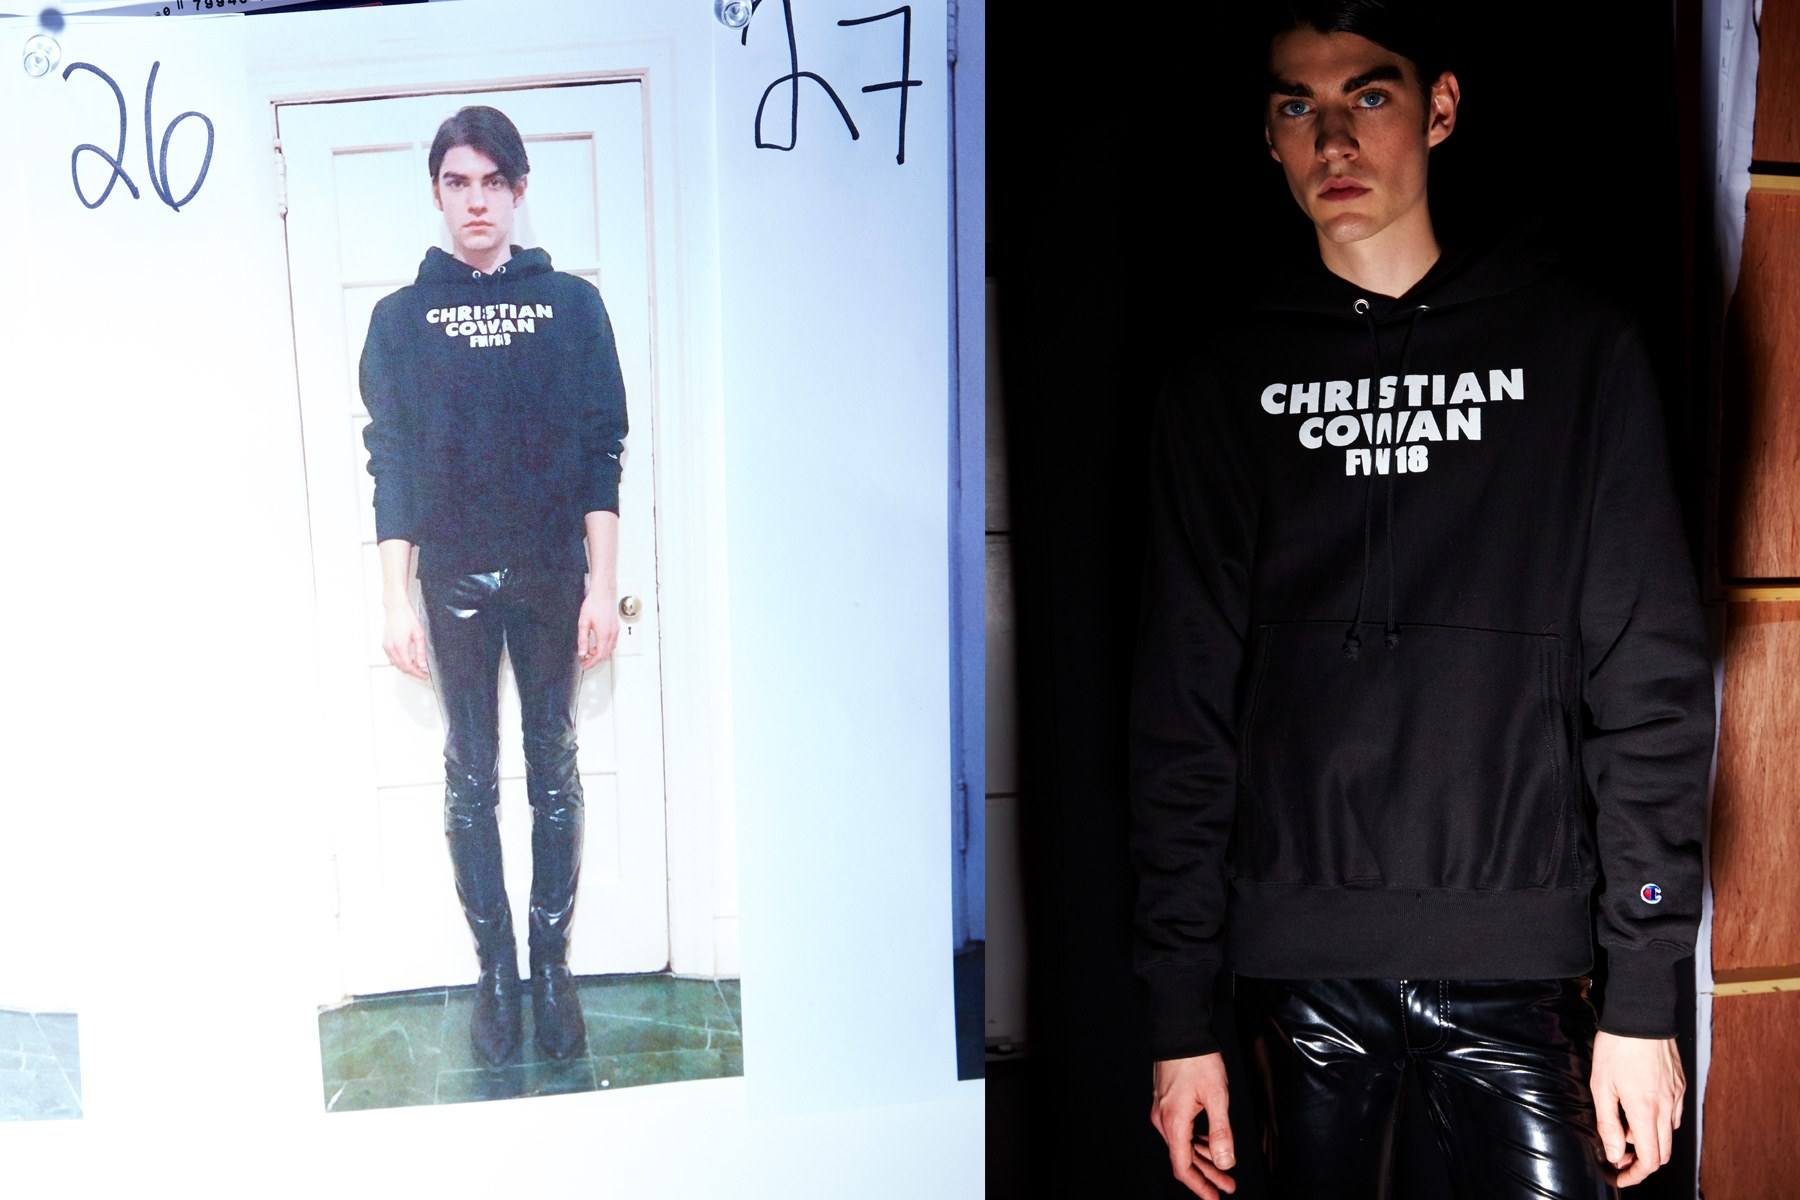 A male model wears a Christian Cowan sweatshirt and vinyl pants backstage for Fall 2018. Photography by Alexander Thompson for Ponyboy magazine.